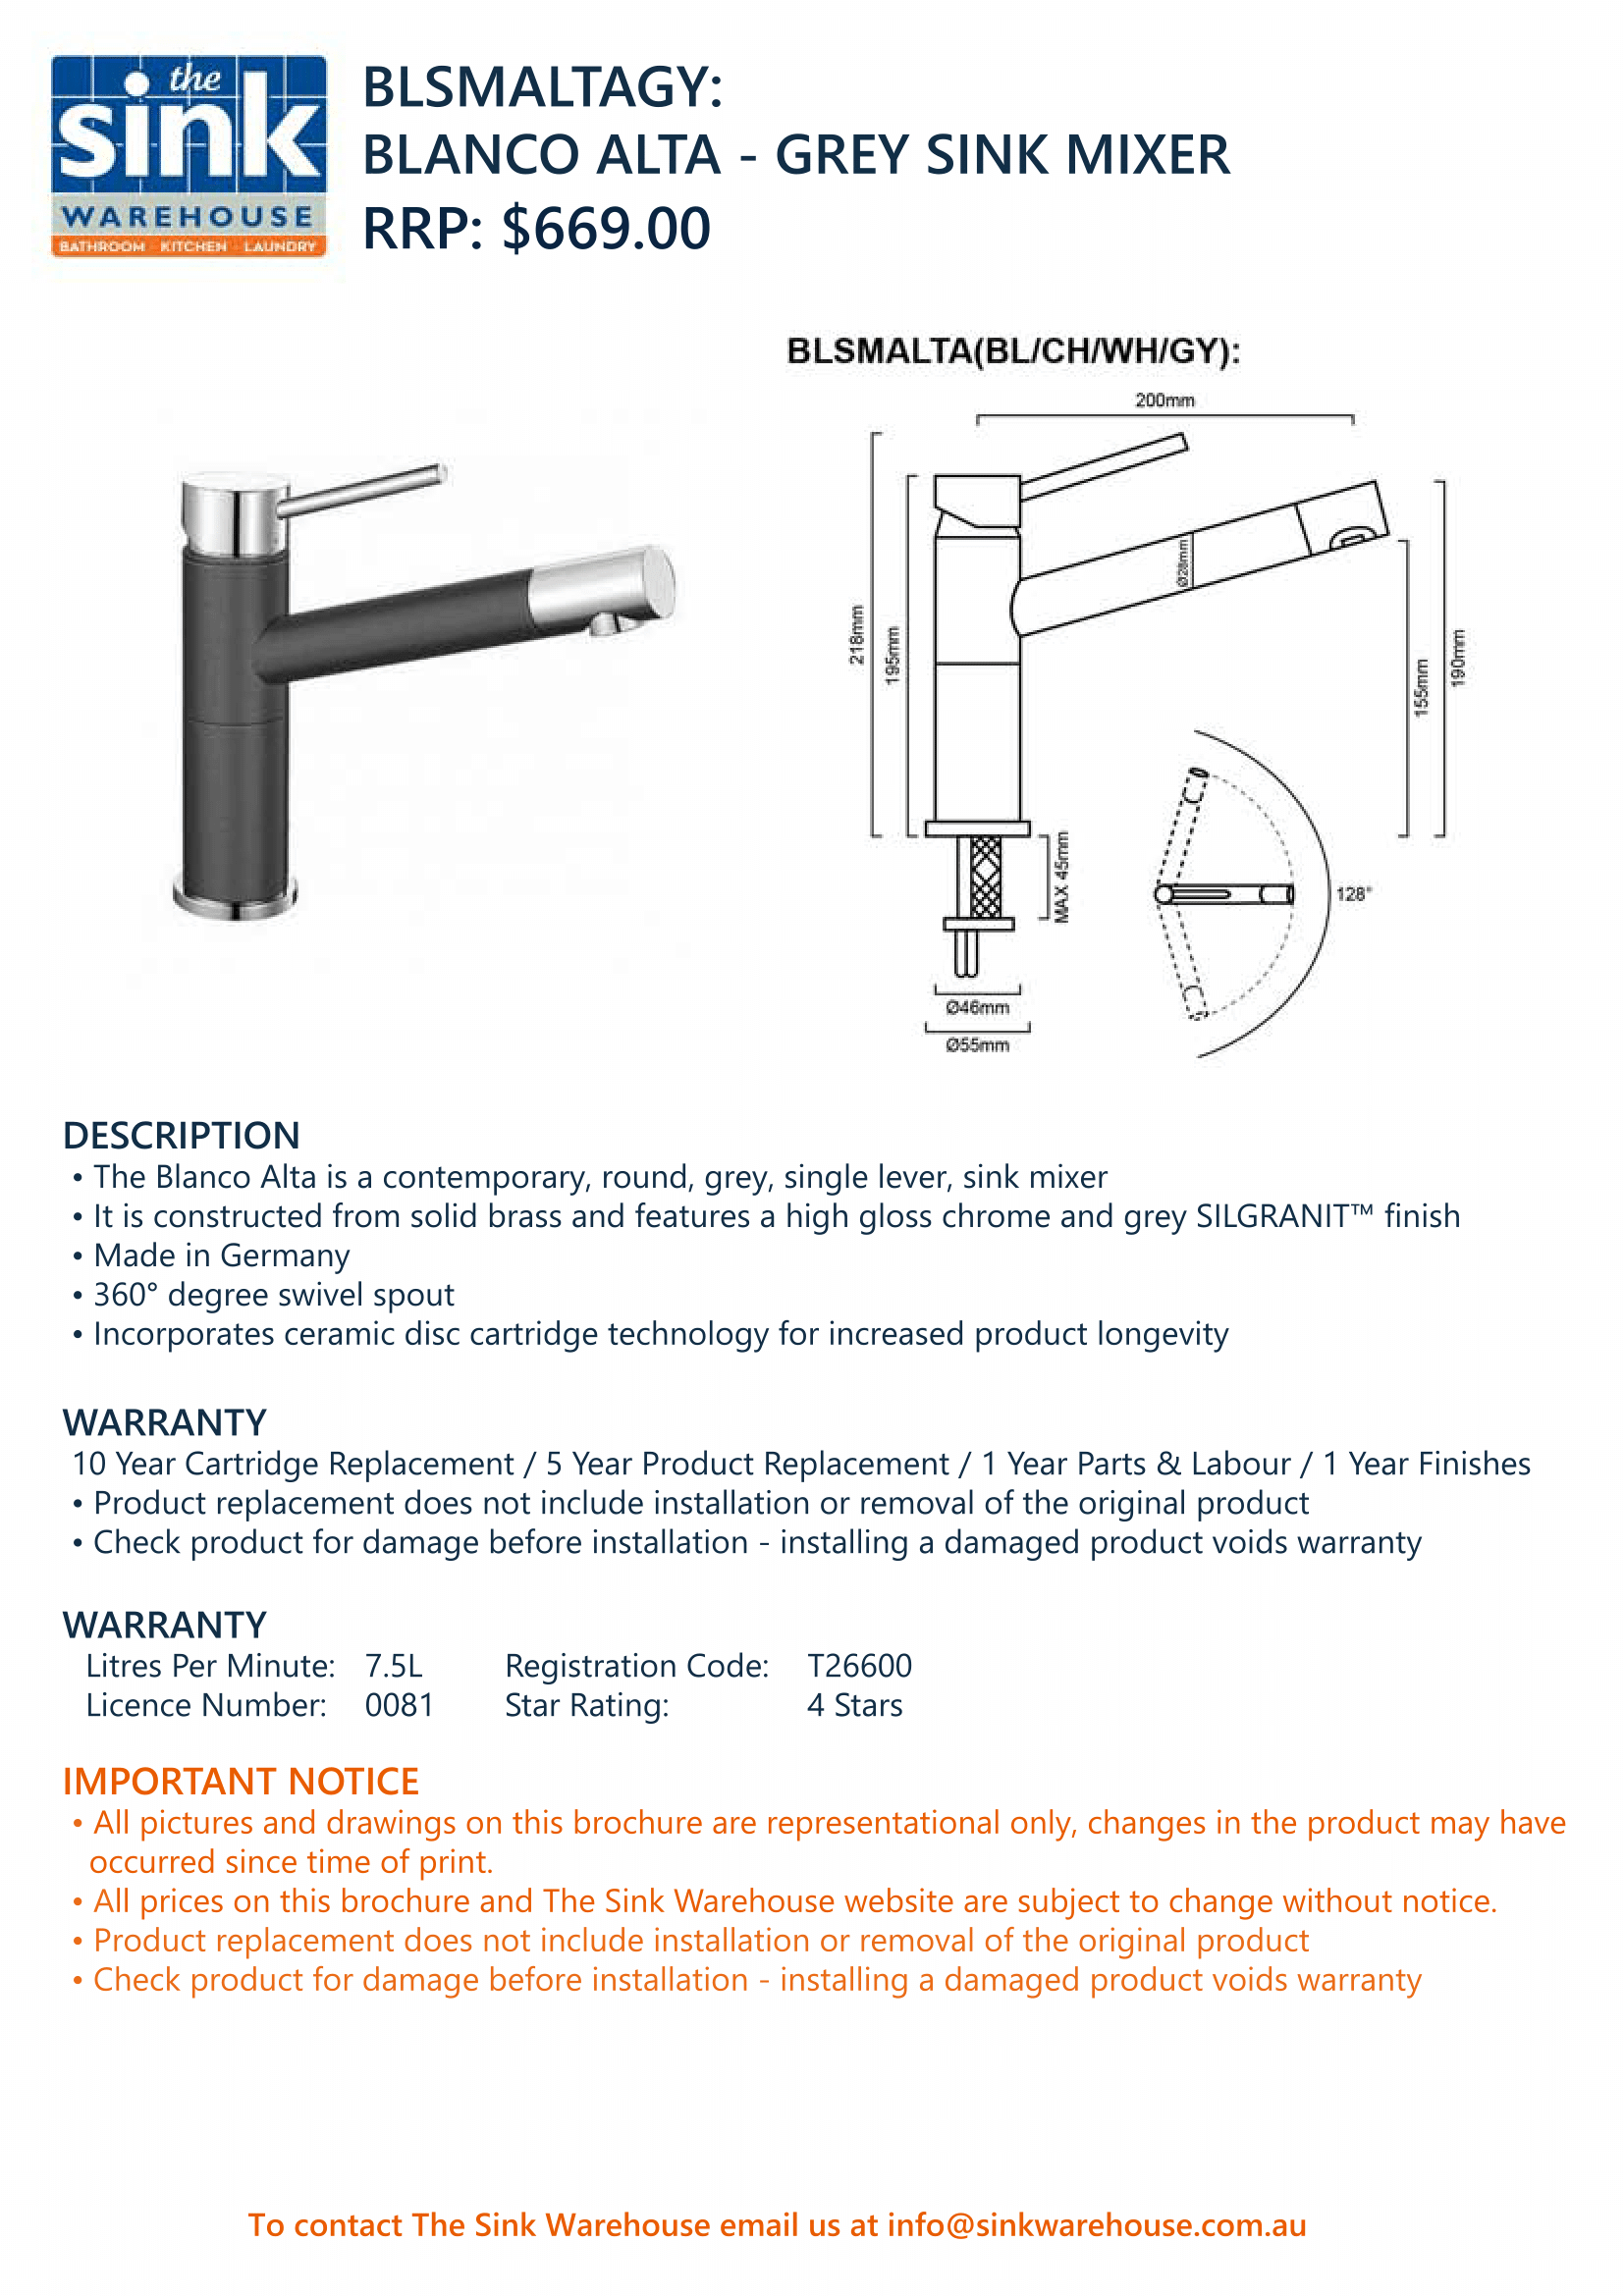 blsmaltagy-product-spec-sheet-1.png